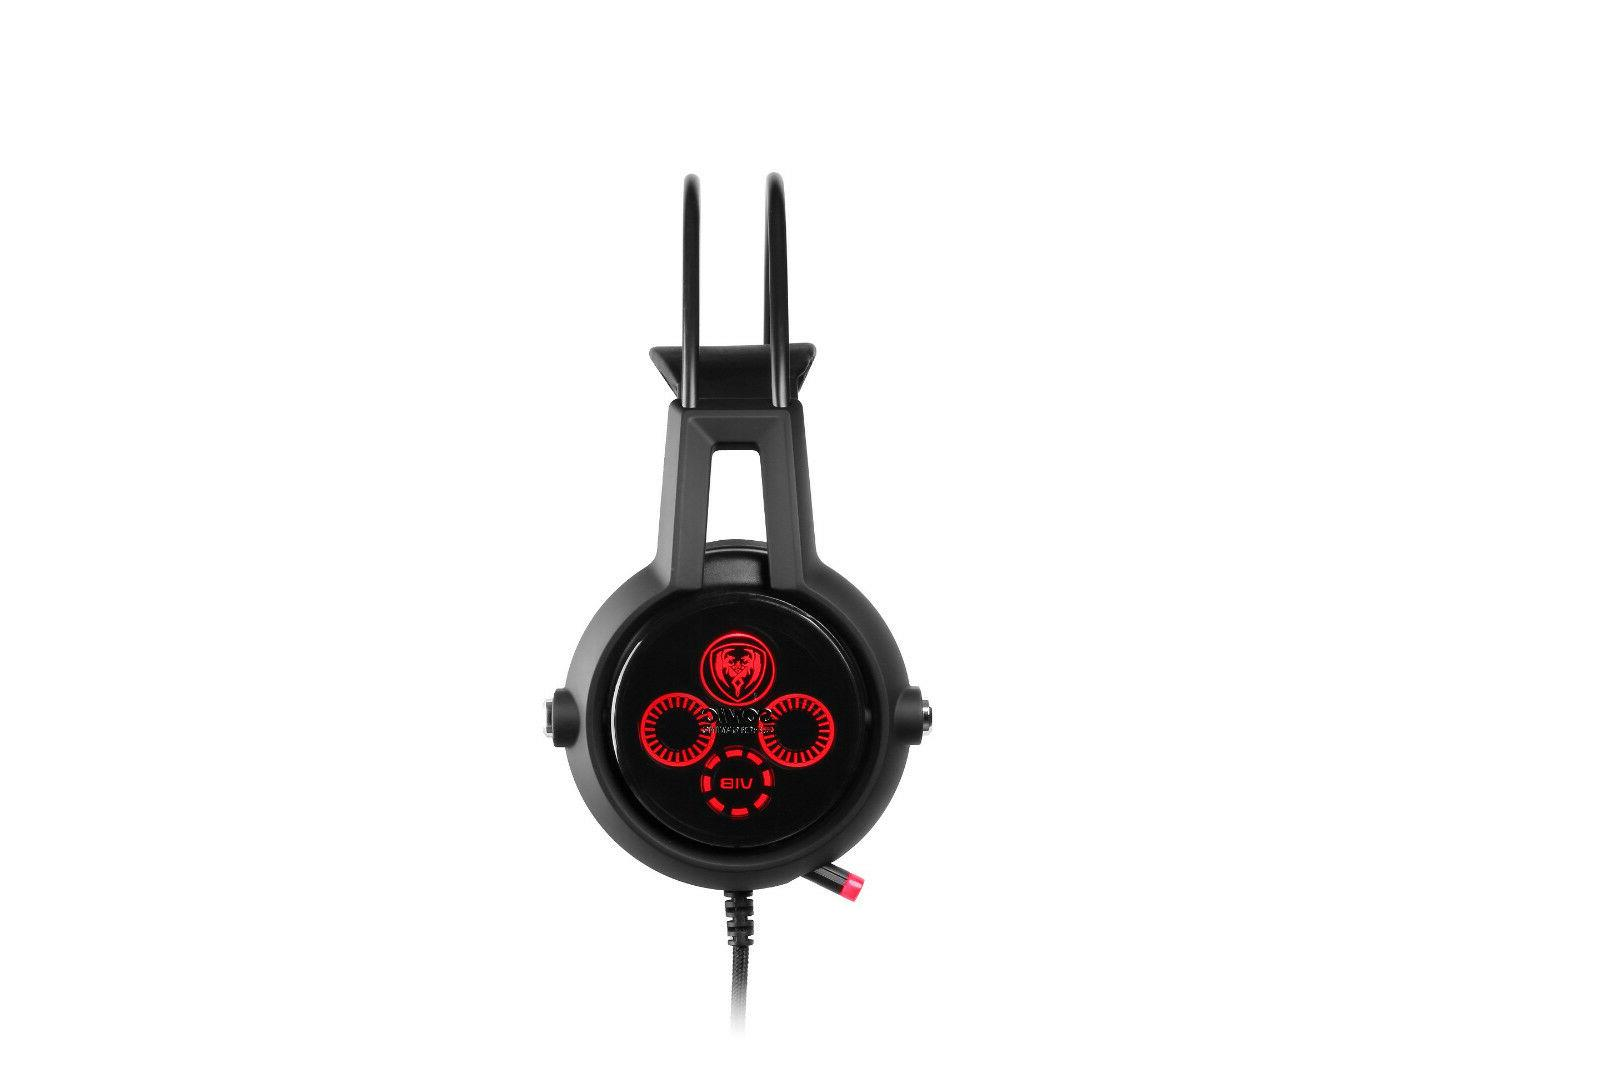 SOMIC Channel Surround Sound Gaming Headset Vibration